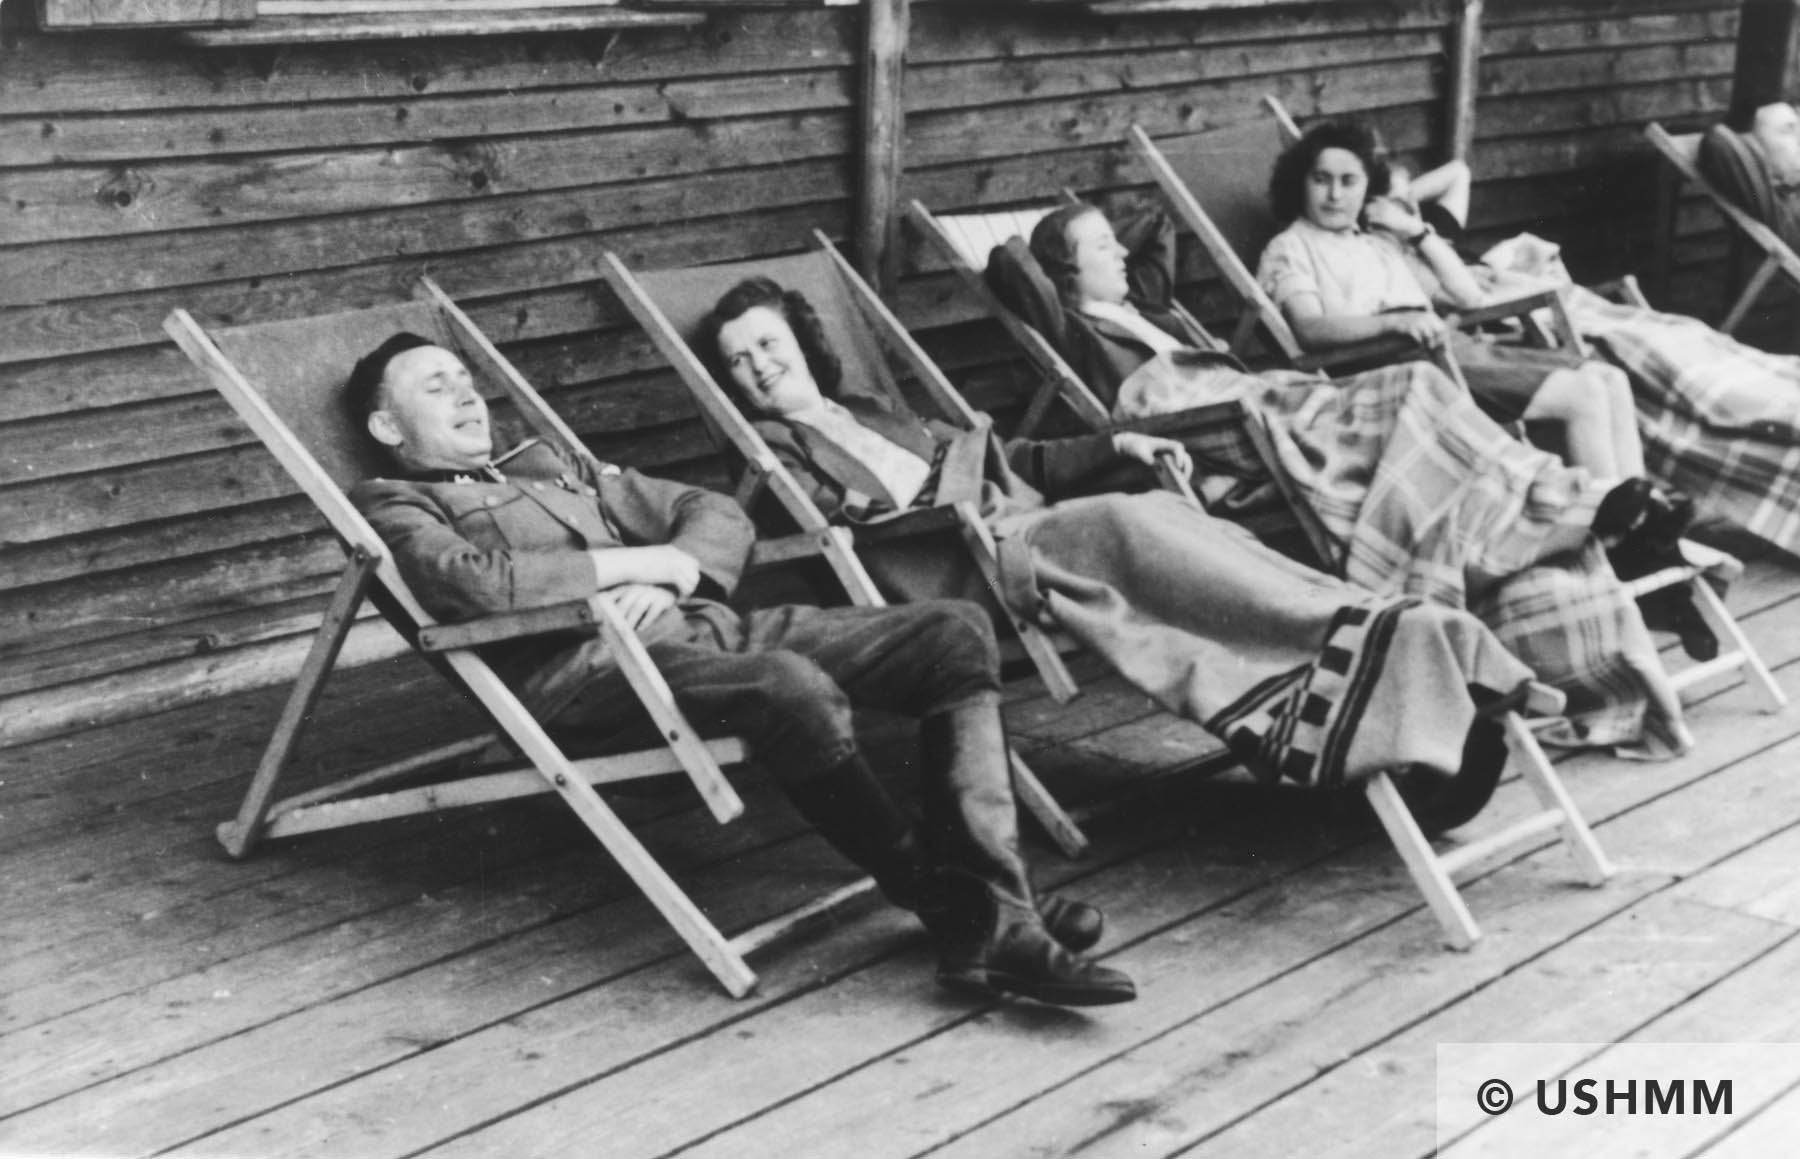 SS officer Karl Höcker relaxes with women in lounge chairs on the deck of the retreat in Solahütte. USHMM 34582